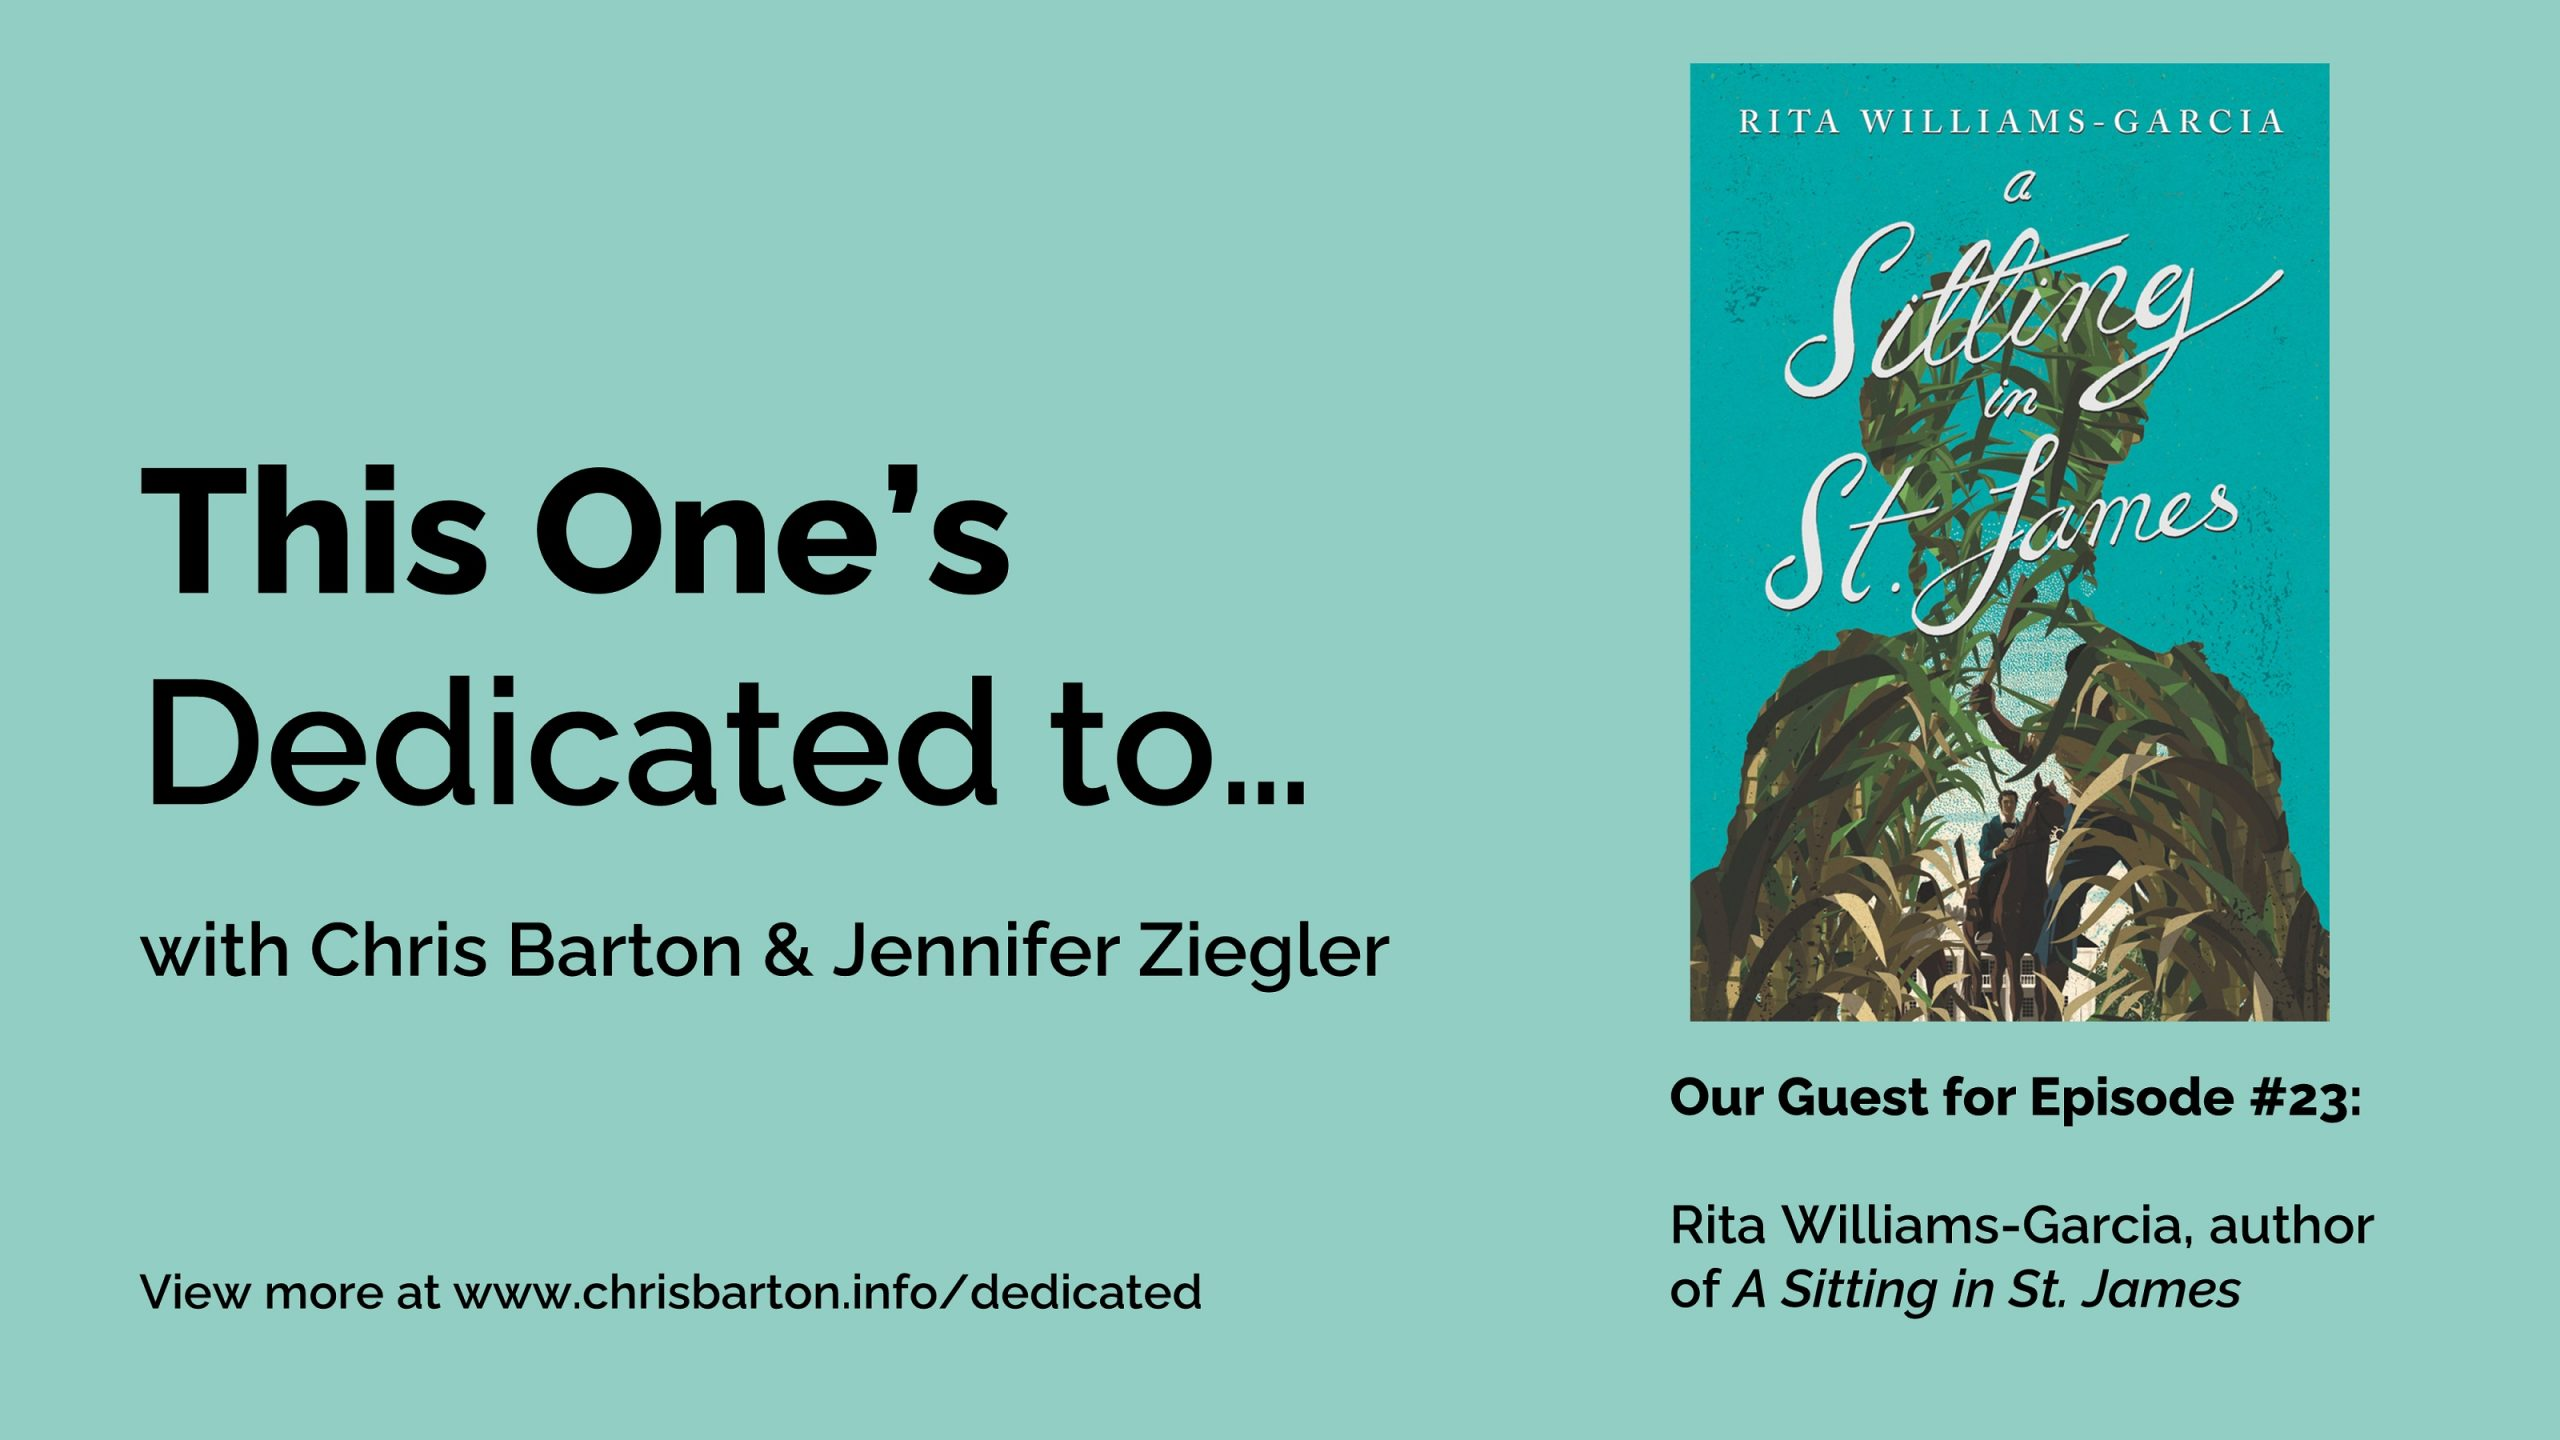 This One's Dedicated to… (#23): Rita Williams-Garcia, A Sitting in St. James